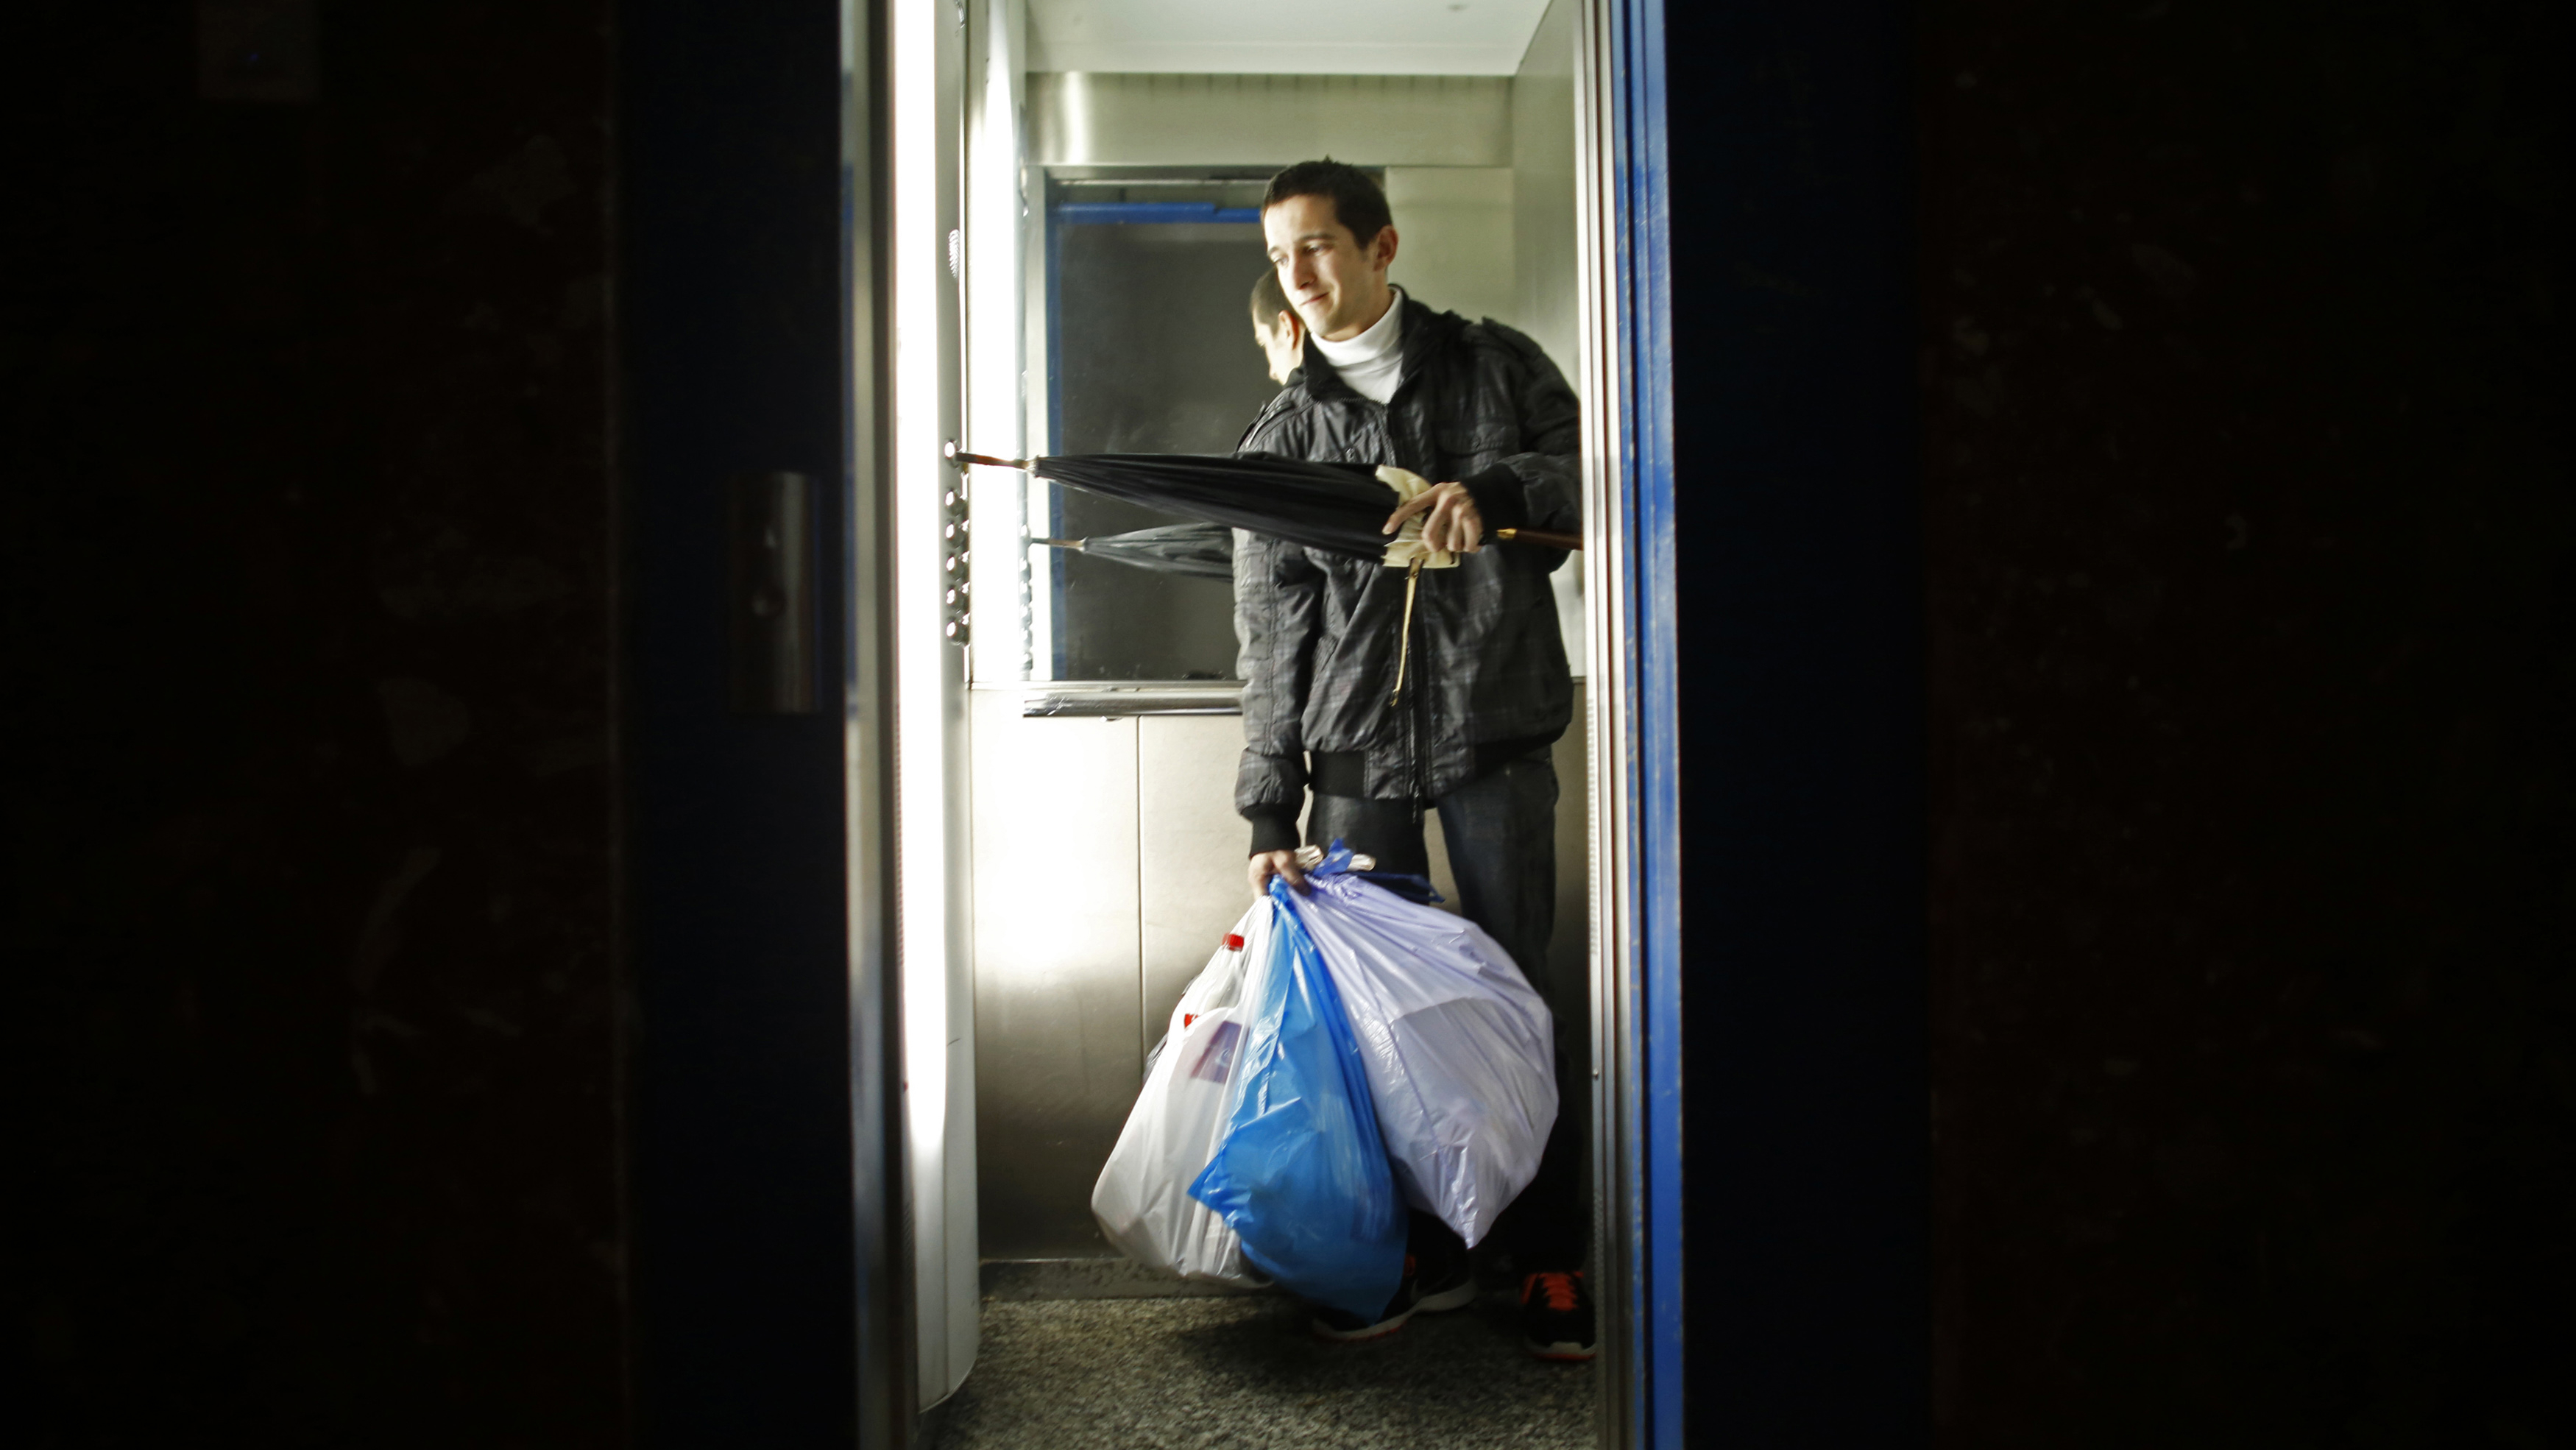 Jesus Pardal, an unemployed 29-year-old father-to-be, pushes buttons in an elevator holding garbage bags containing other people's trash to take out to earn 0.50 euro cents (0.60 US cents) in Cadiz, southern Spain November 2, 2012. Spain's number of jobless rose by 2.7 percent in October from a month earlier, or by 128,242 people, leaving 4.8 million people out of work, data from the Labour Ministry showed on Monday. This was the third straight month the jobless figures rose after a respite during the summer tourism season. Picture taken November 2, 2012. REUTERS/Marcelo del Pozo (SPAIN - Tags: BUSINESS EMPLOYMENT SOCIETY POVERTY TPX IMAGES OF THE DAY)